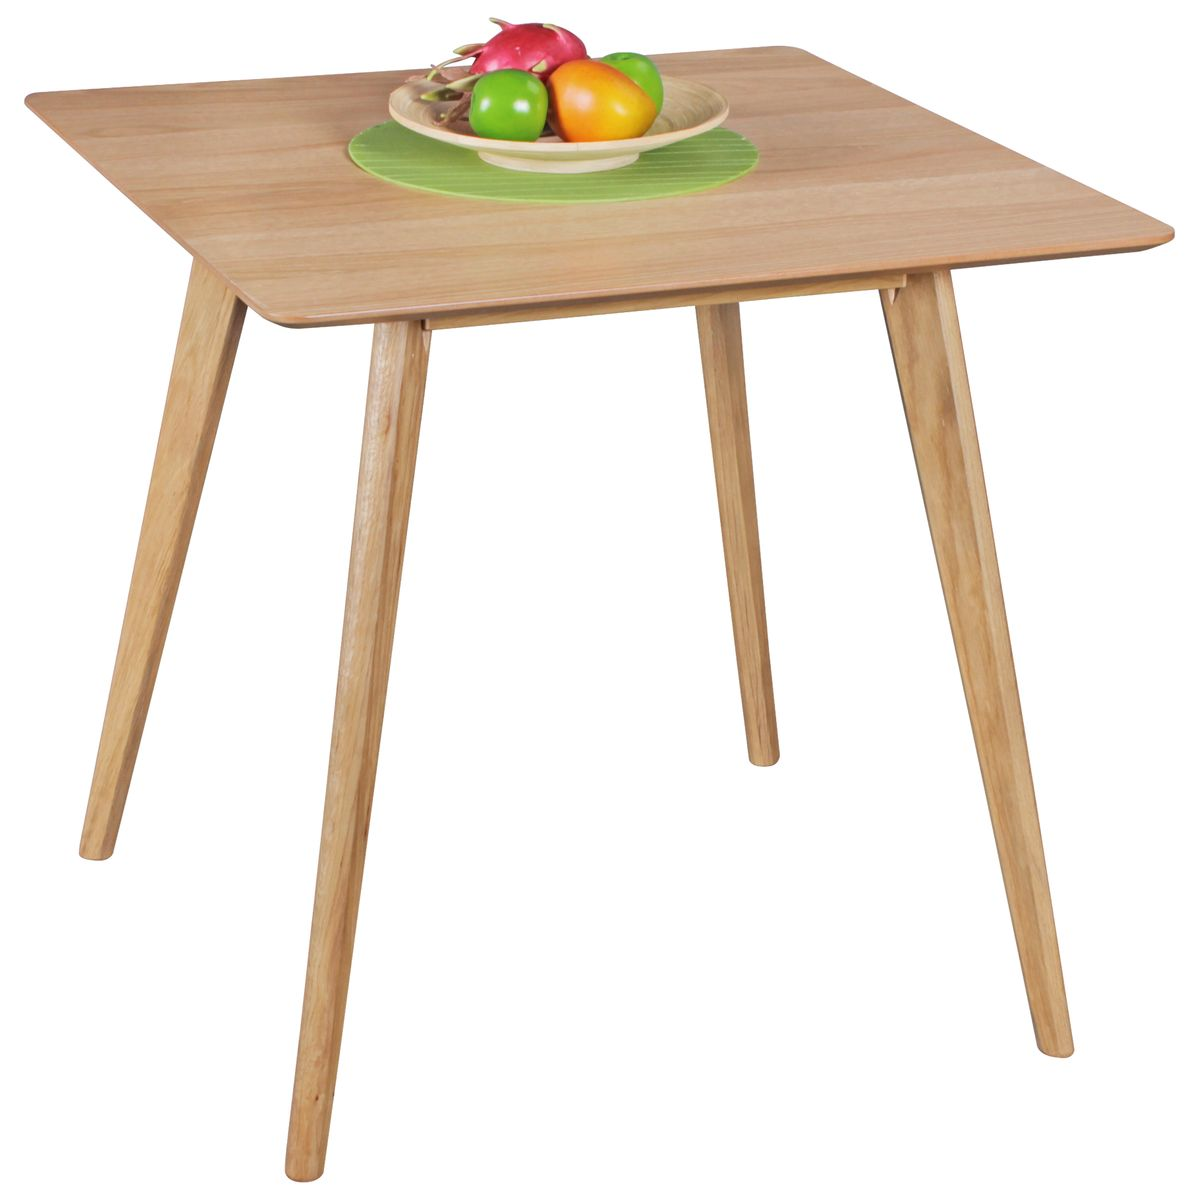 table 80 x 76 x 80cm table mdf table en bois design